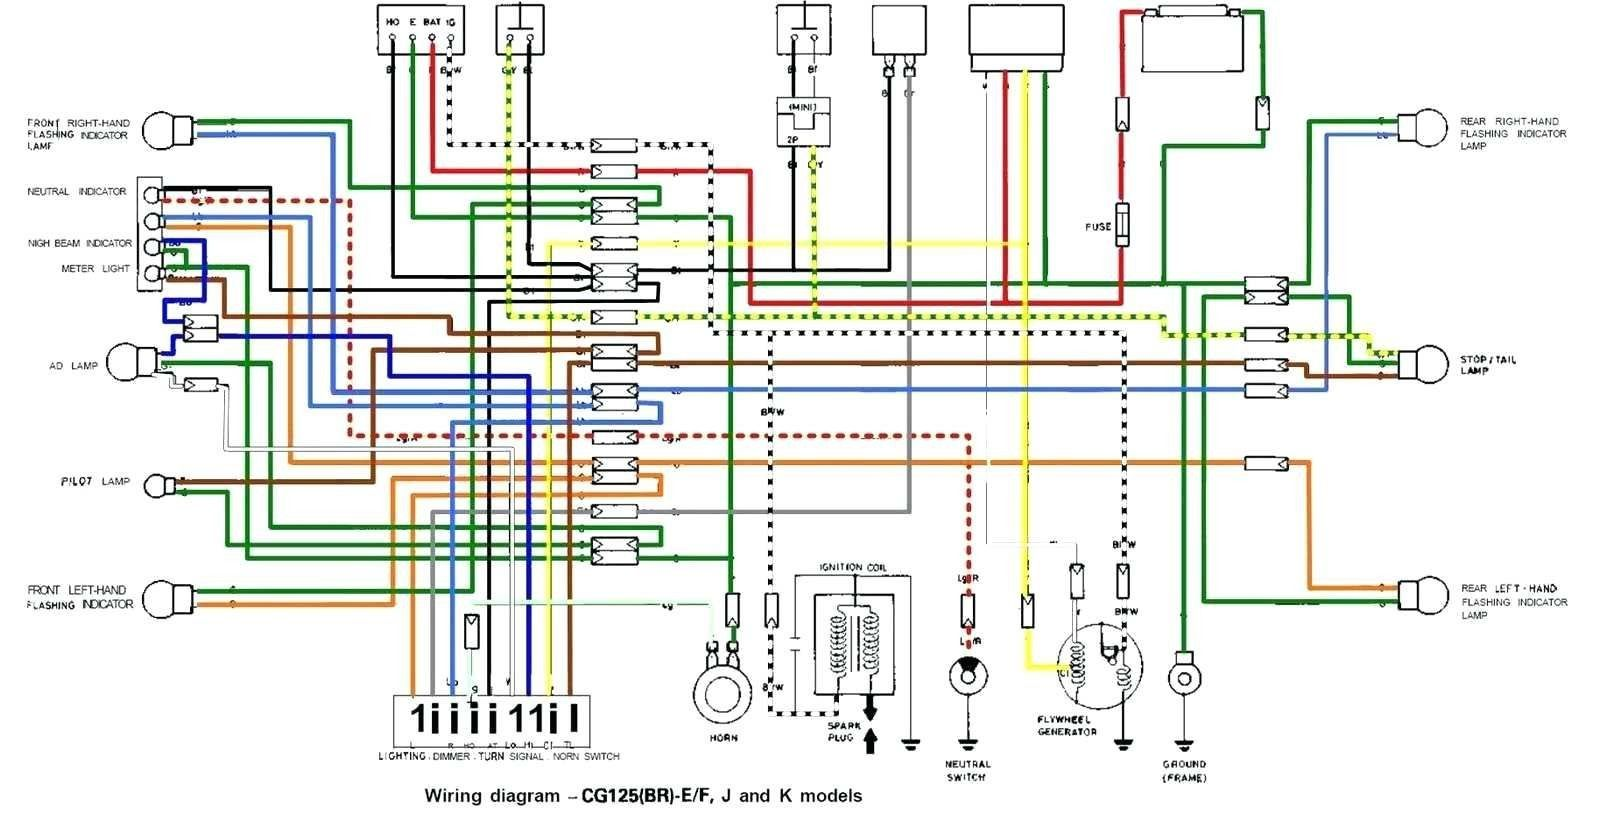 Motorcycle Wiring Diagram With Cdi Box New In 2020 Motorcycle Wiring Honda 125 Electrical Diagram